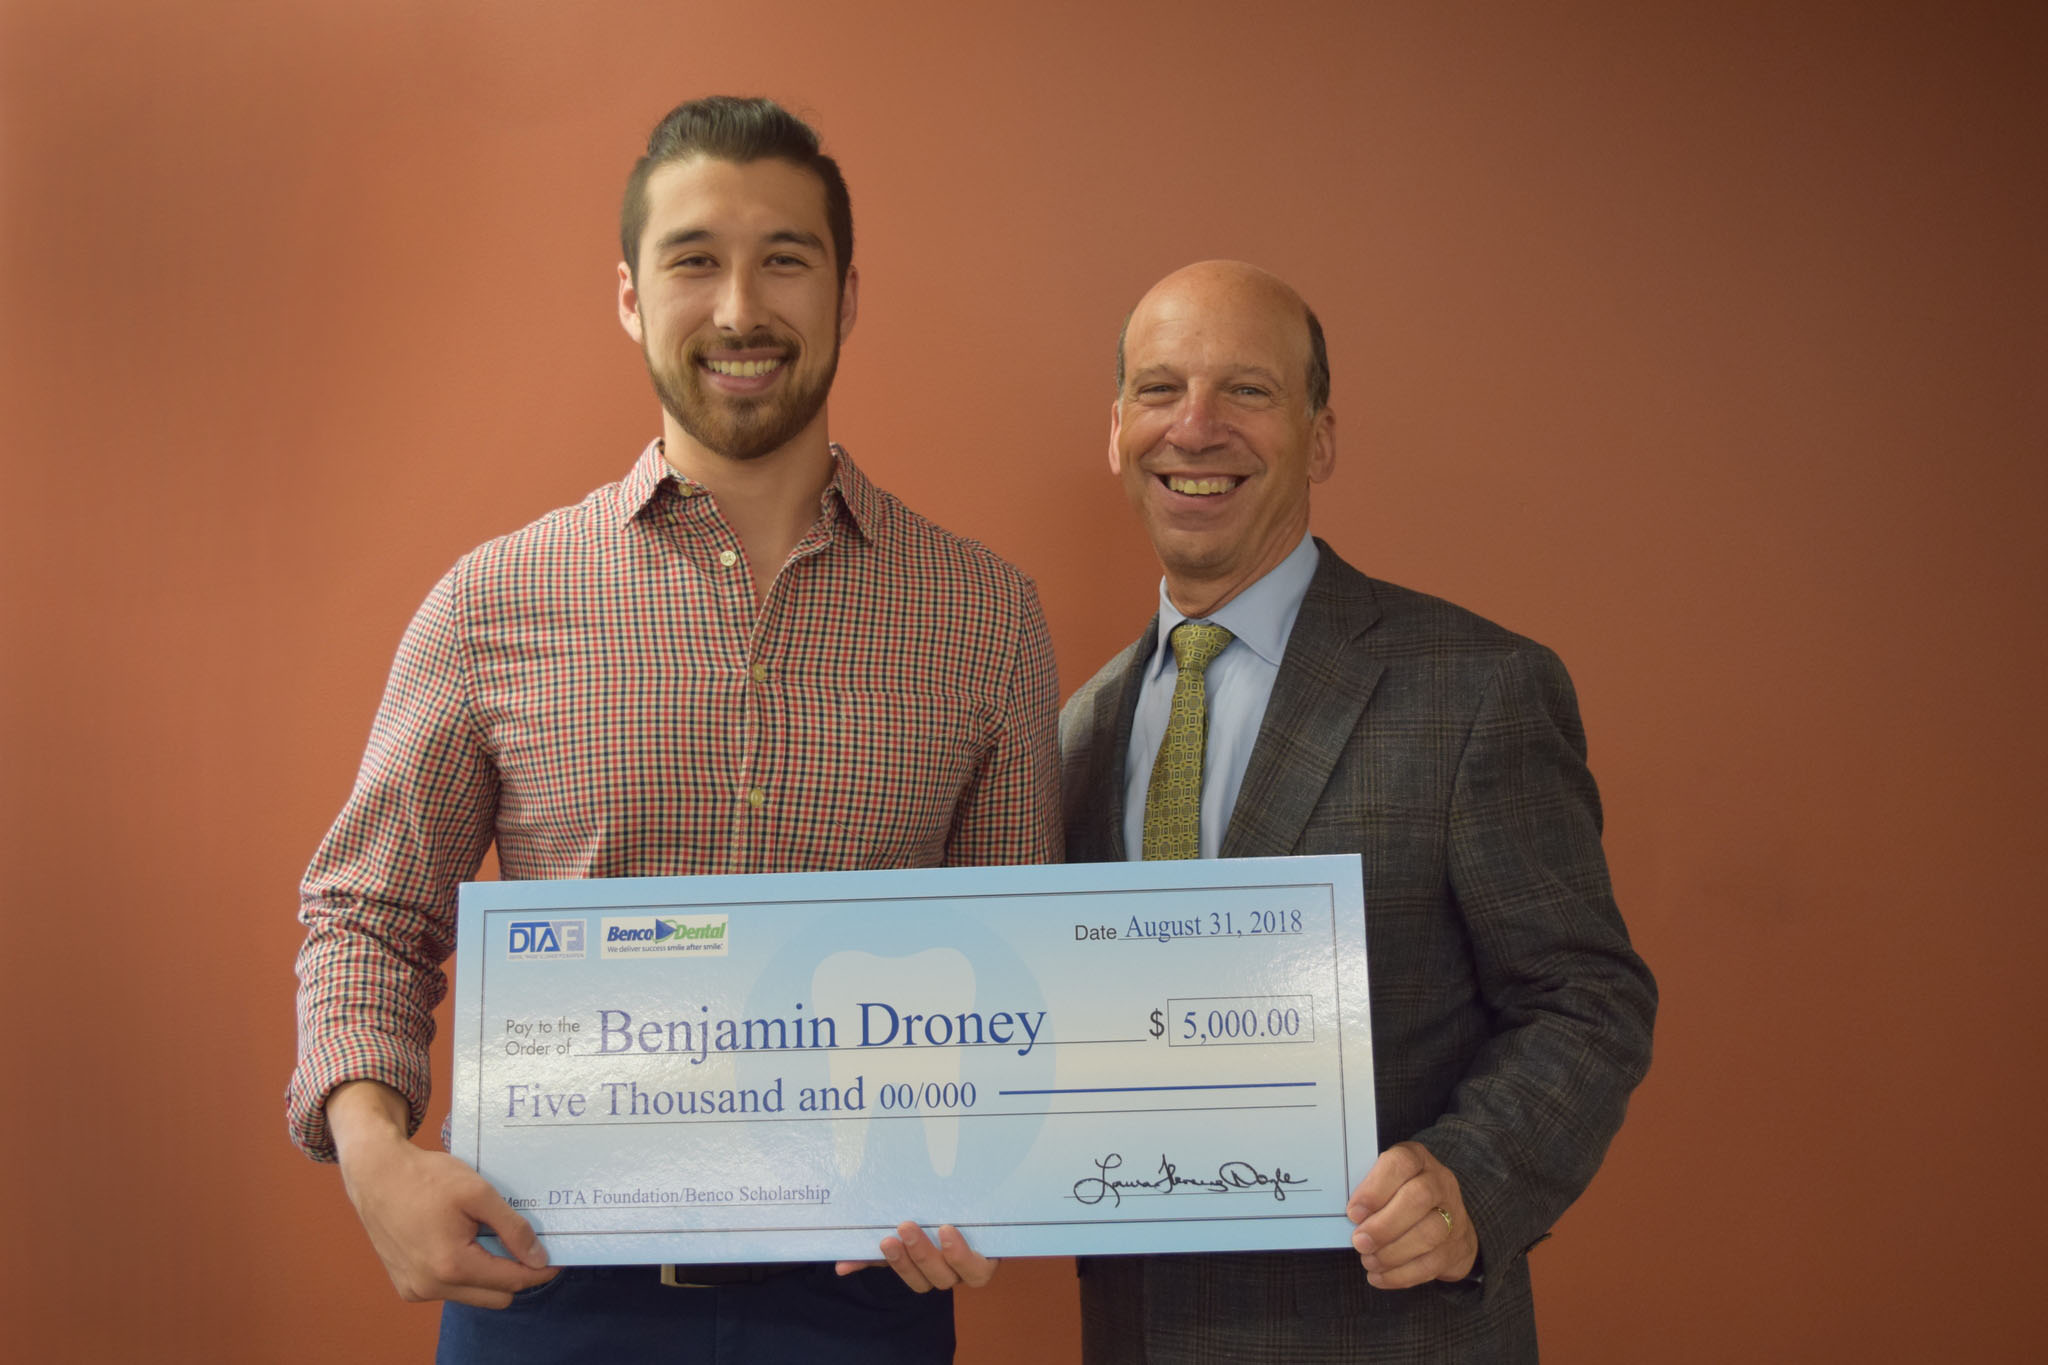 TCDM D3, Ben Droney, receives a scholarship award from DTA Foundation and Benco Dental